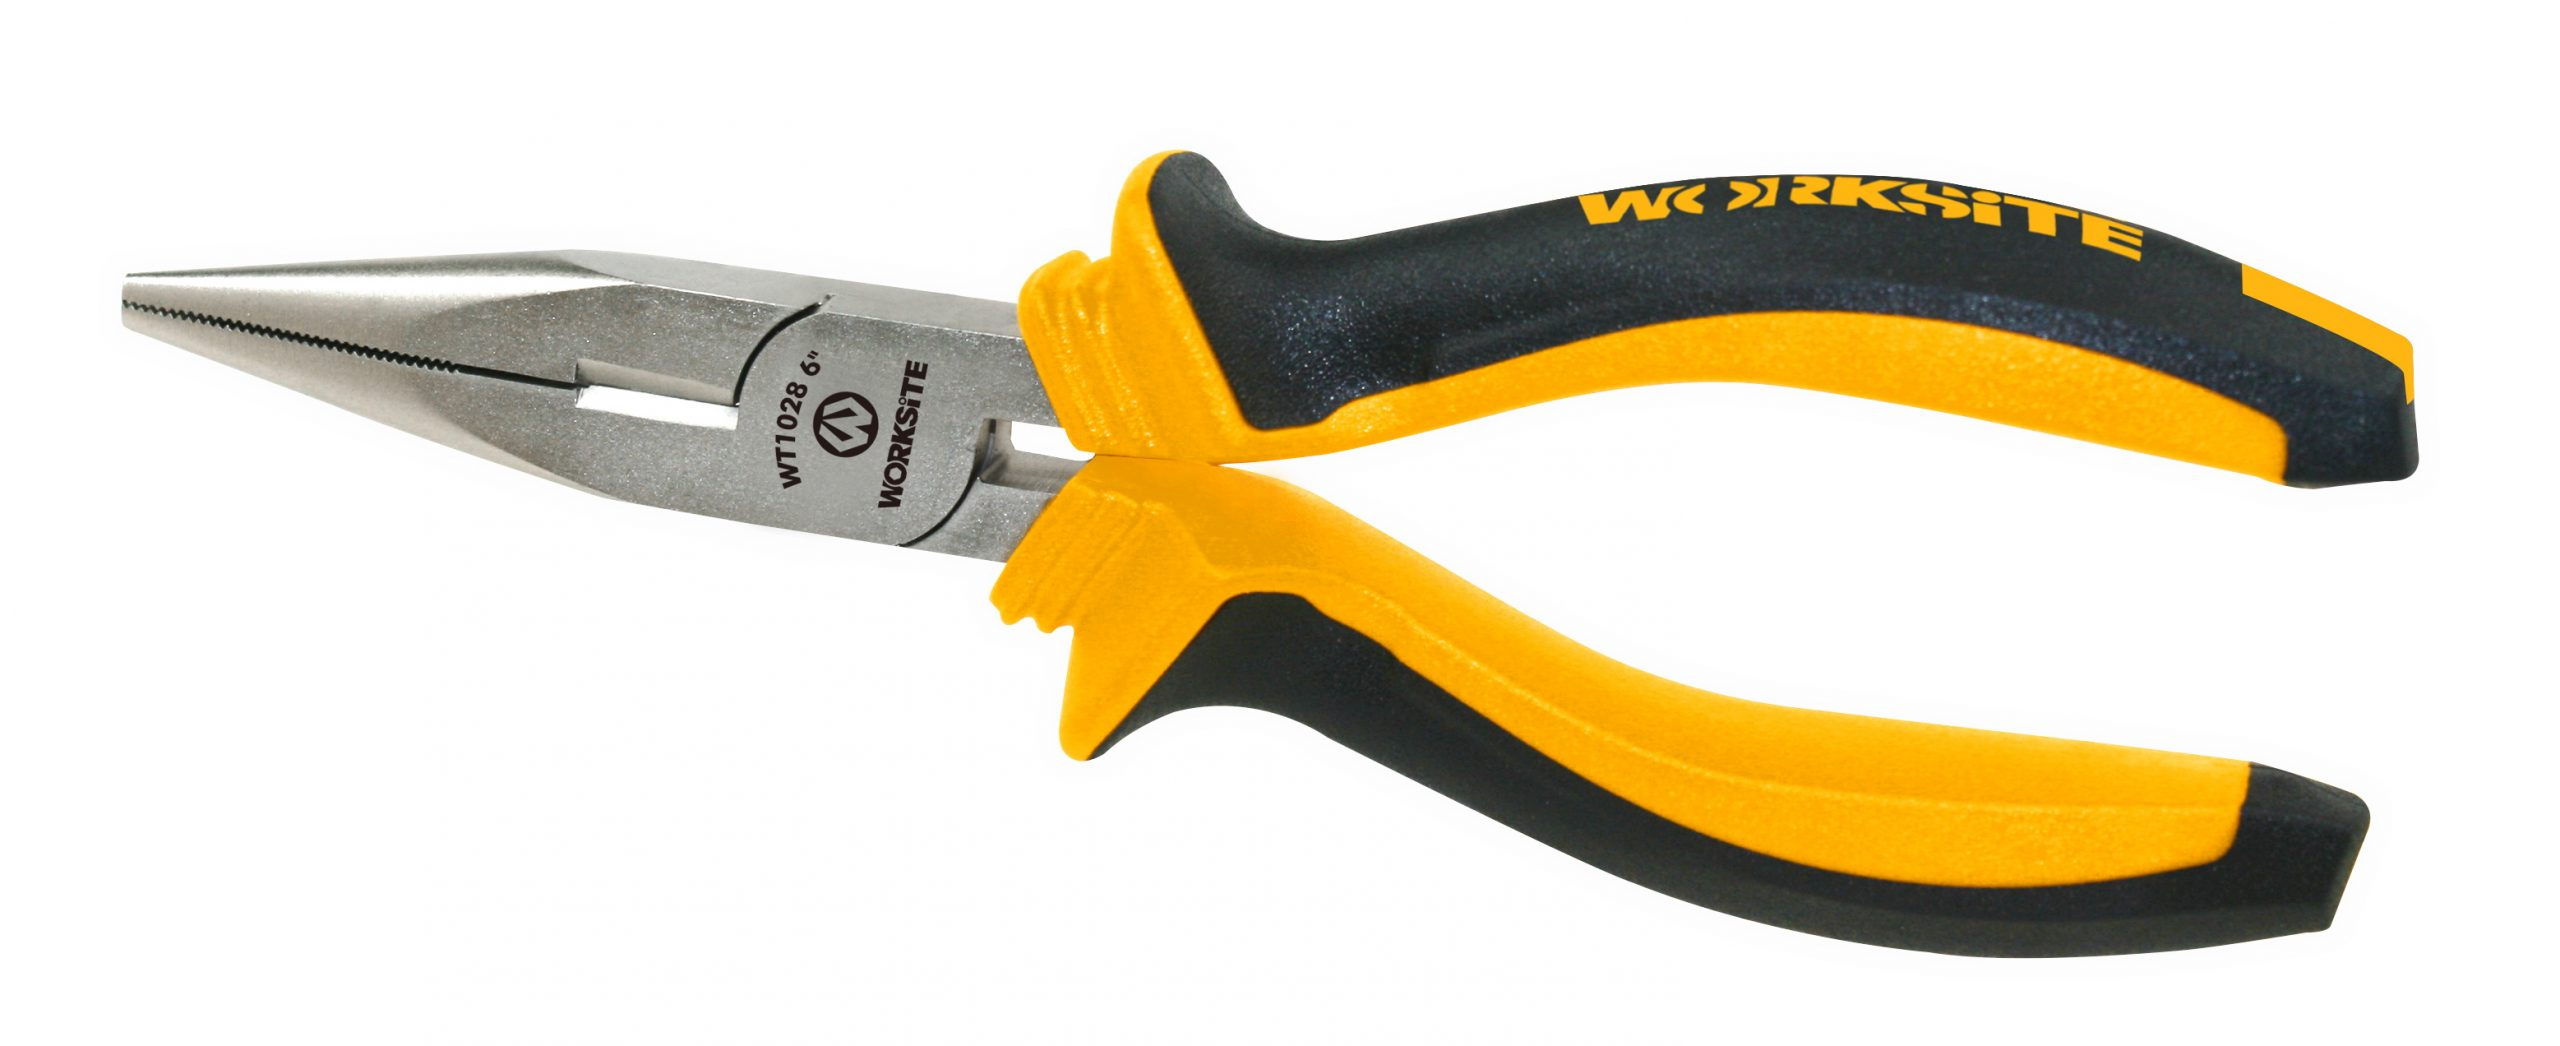 Worksite Long Nose Cutter Pliers, 6inch/8inch Insulated, Multi Functional Pulling out, Clamping, Cutting Wires, Electrician Pliers WT1028/WT1029